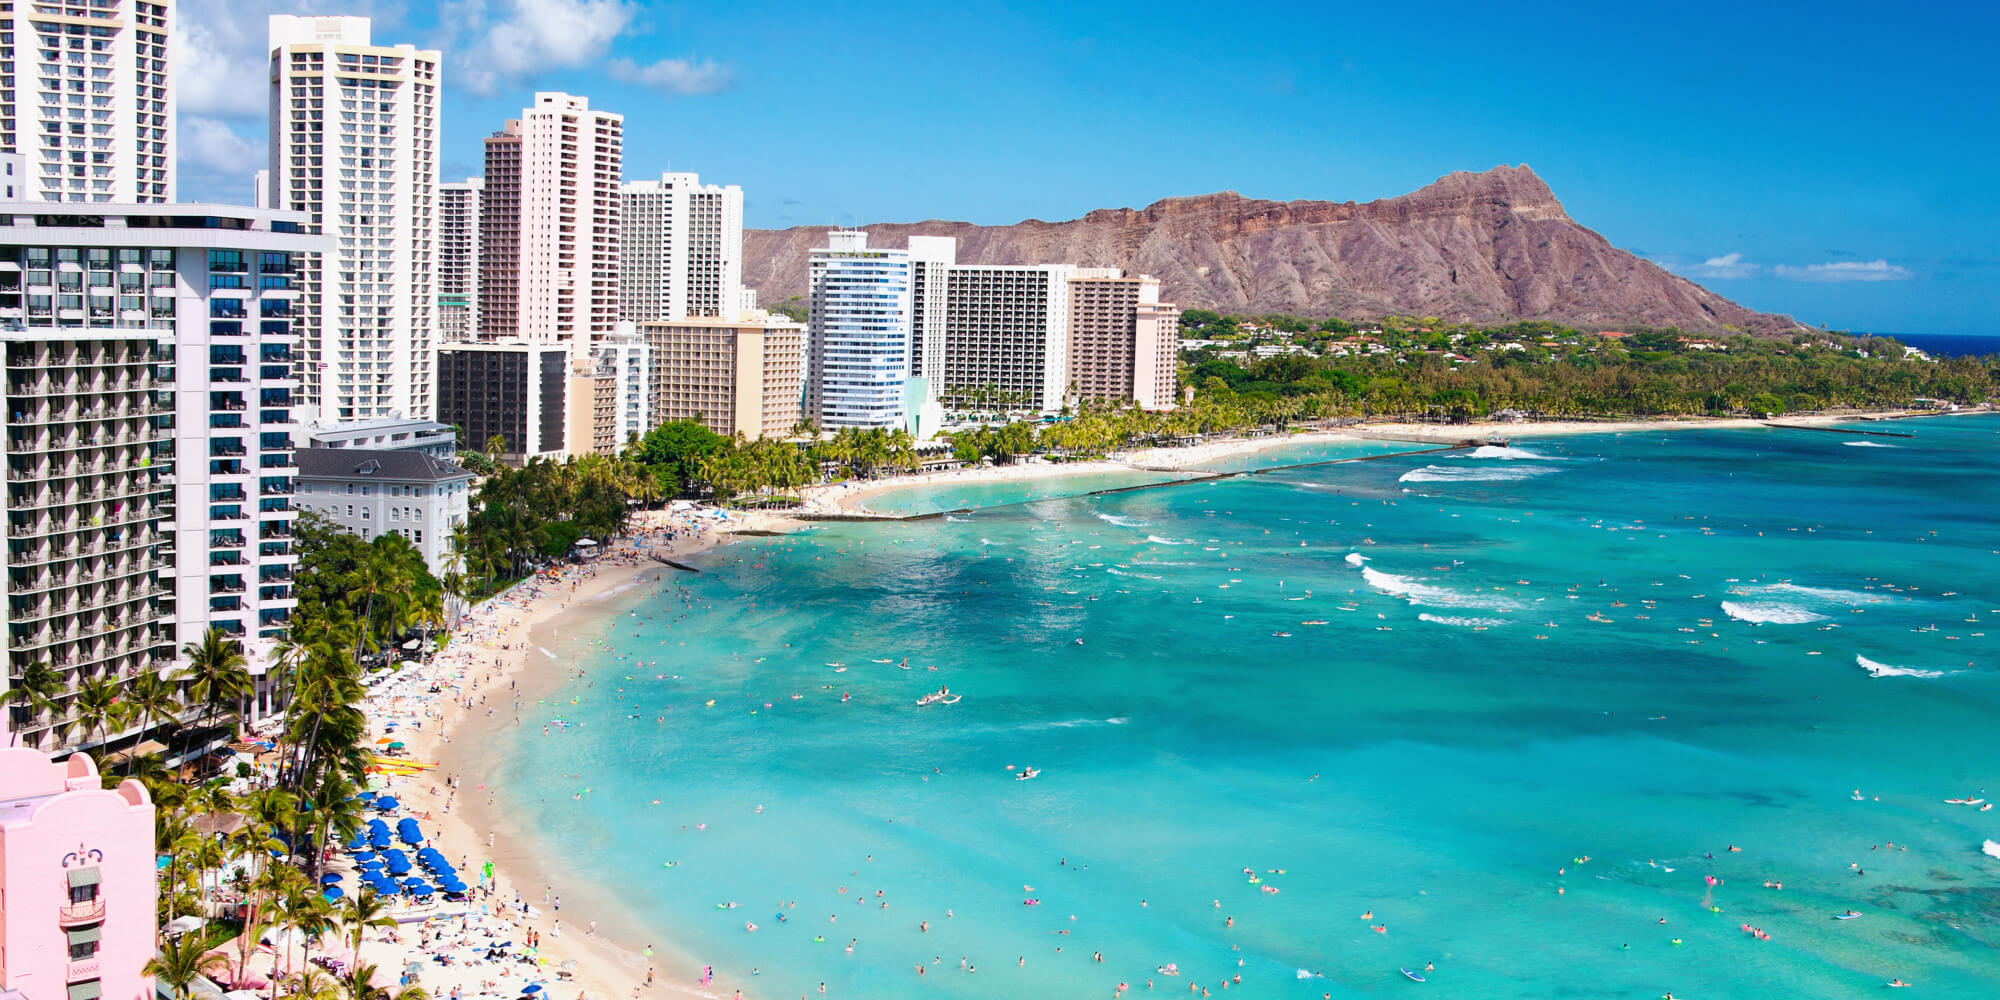 These 5 Amazing Skyline Views In Hawaii Will Blow You Away